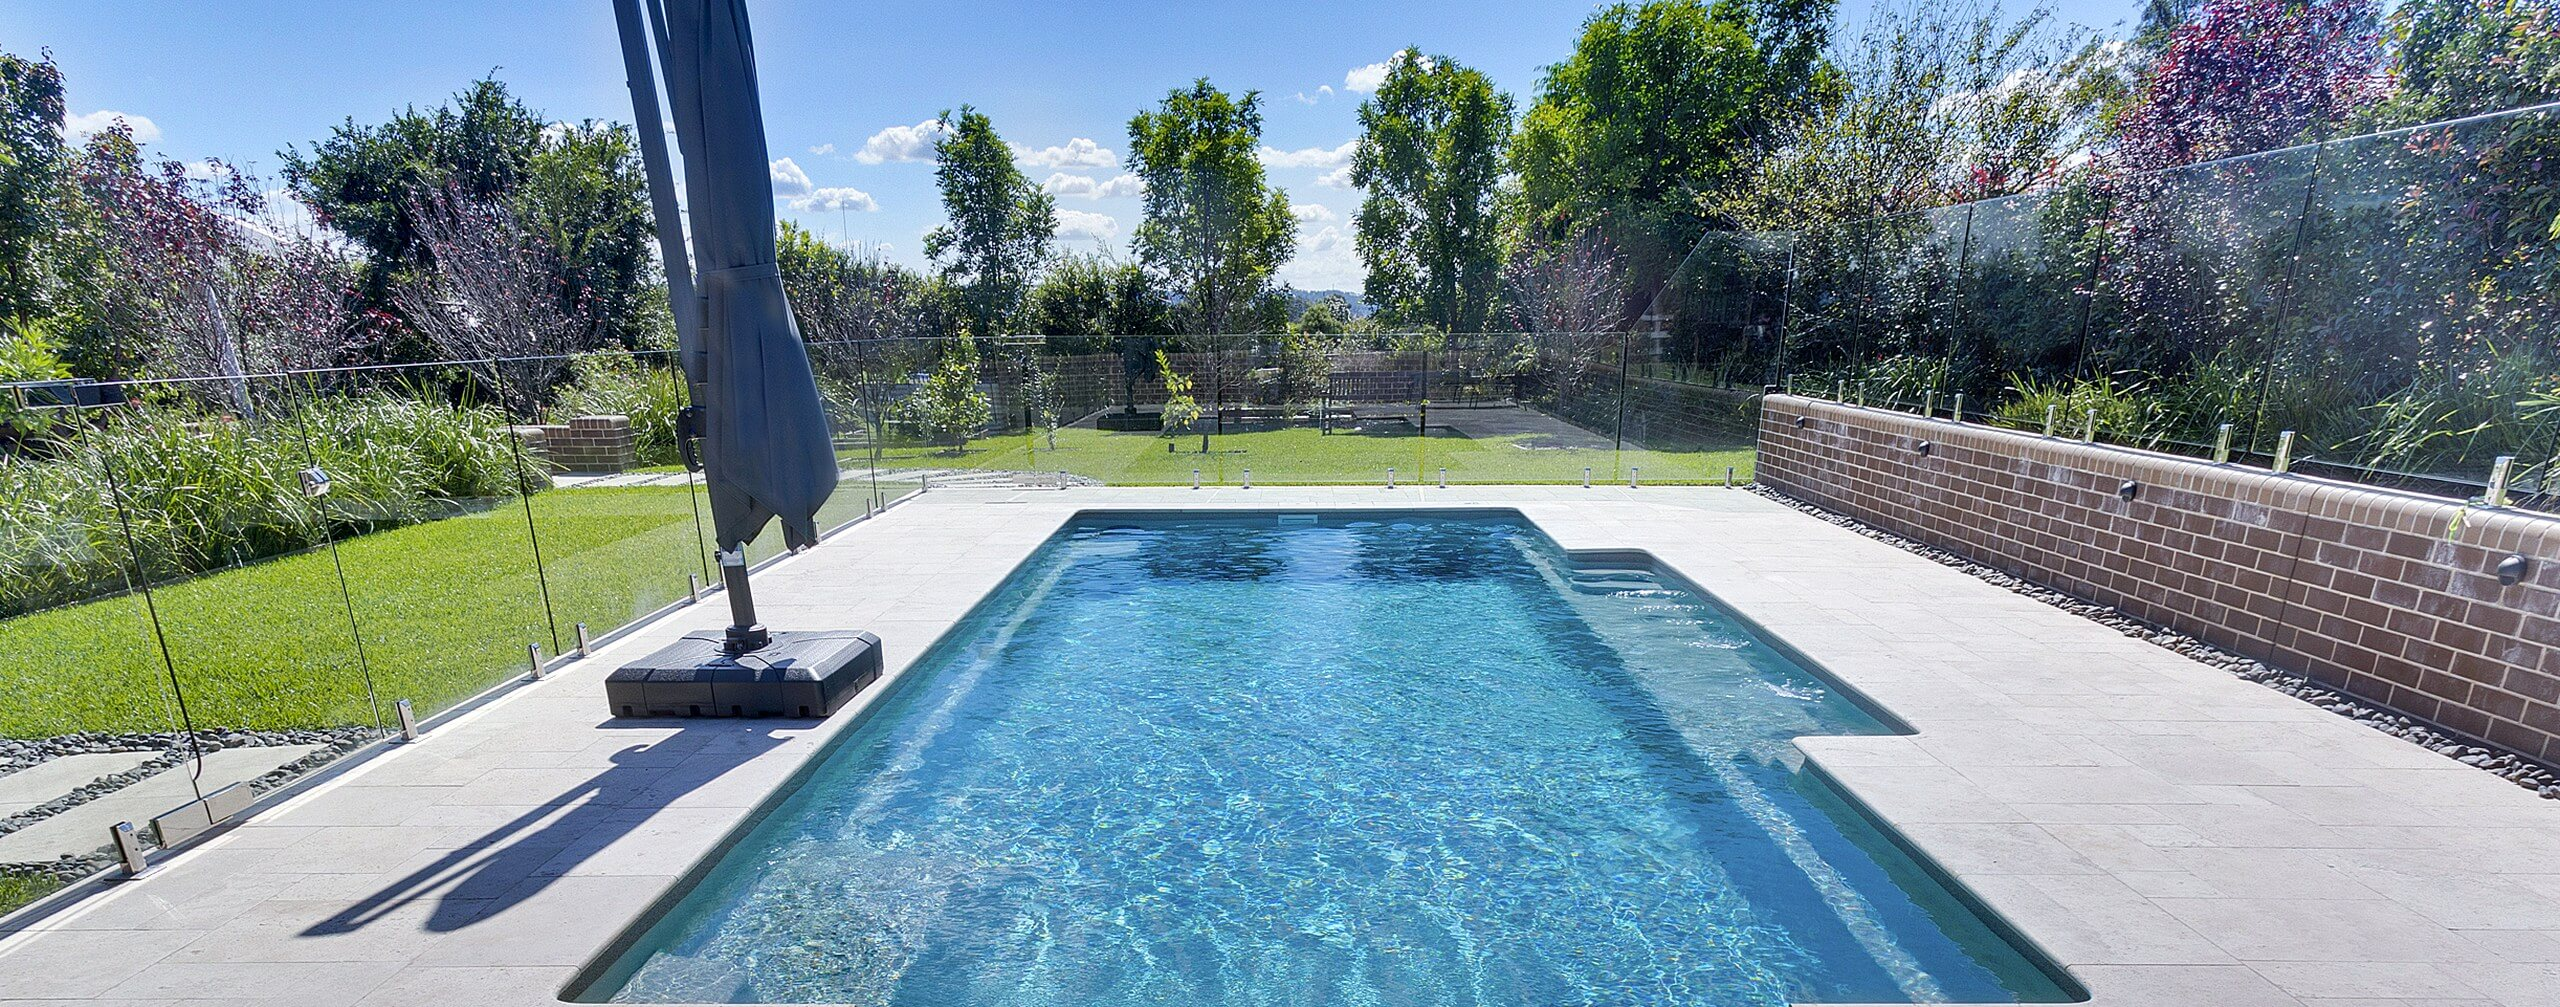 Compass Pools Australia Vogue fibreglass pools with bubblers on the bench